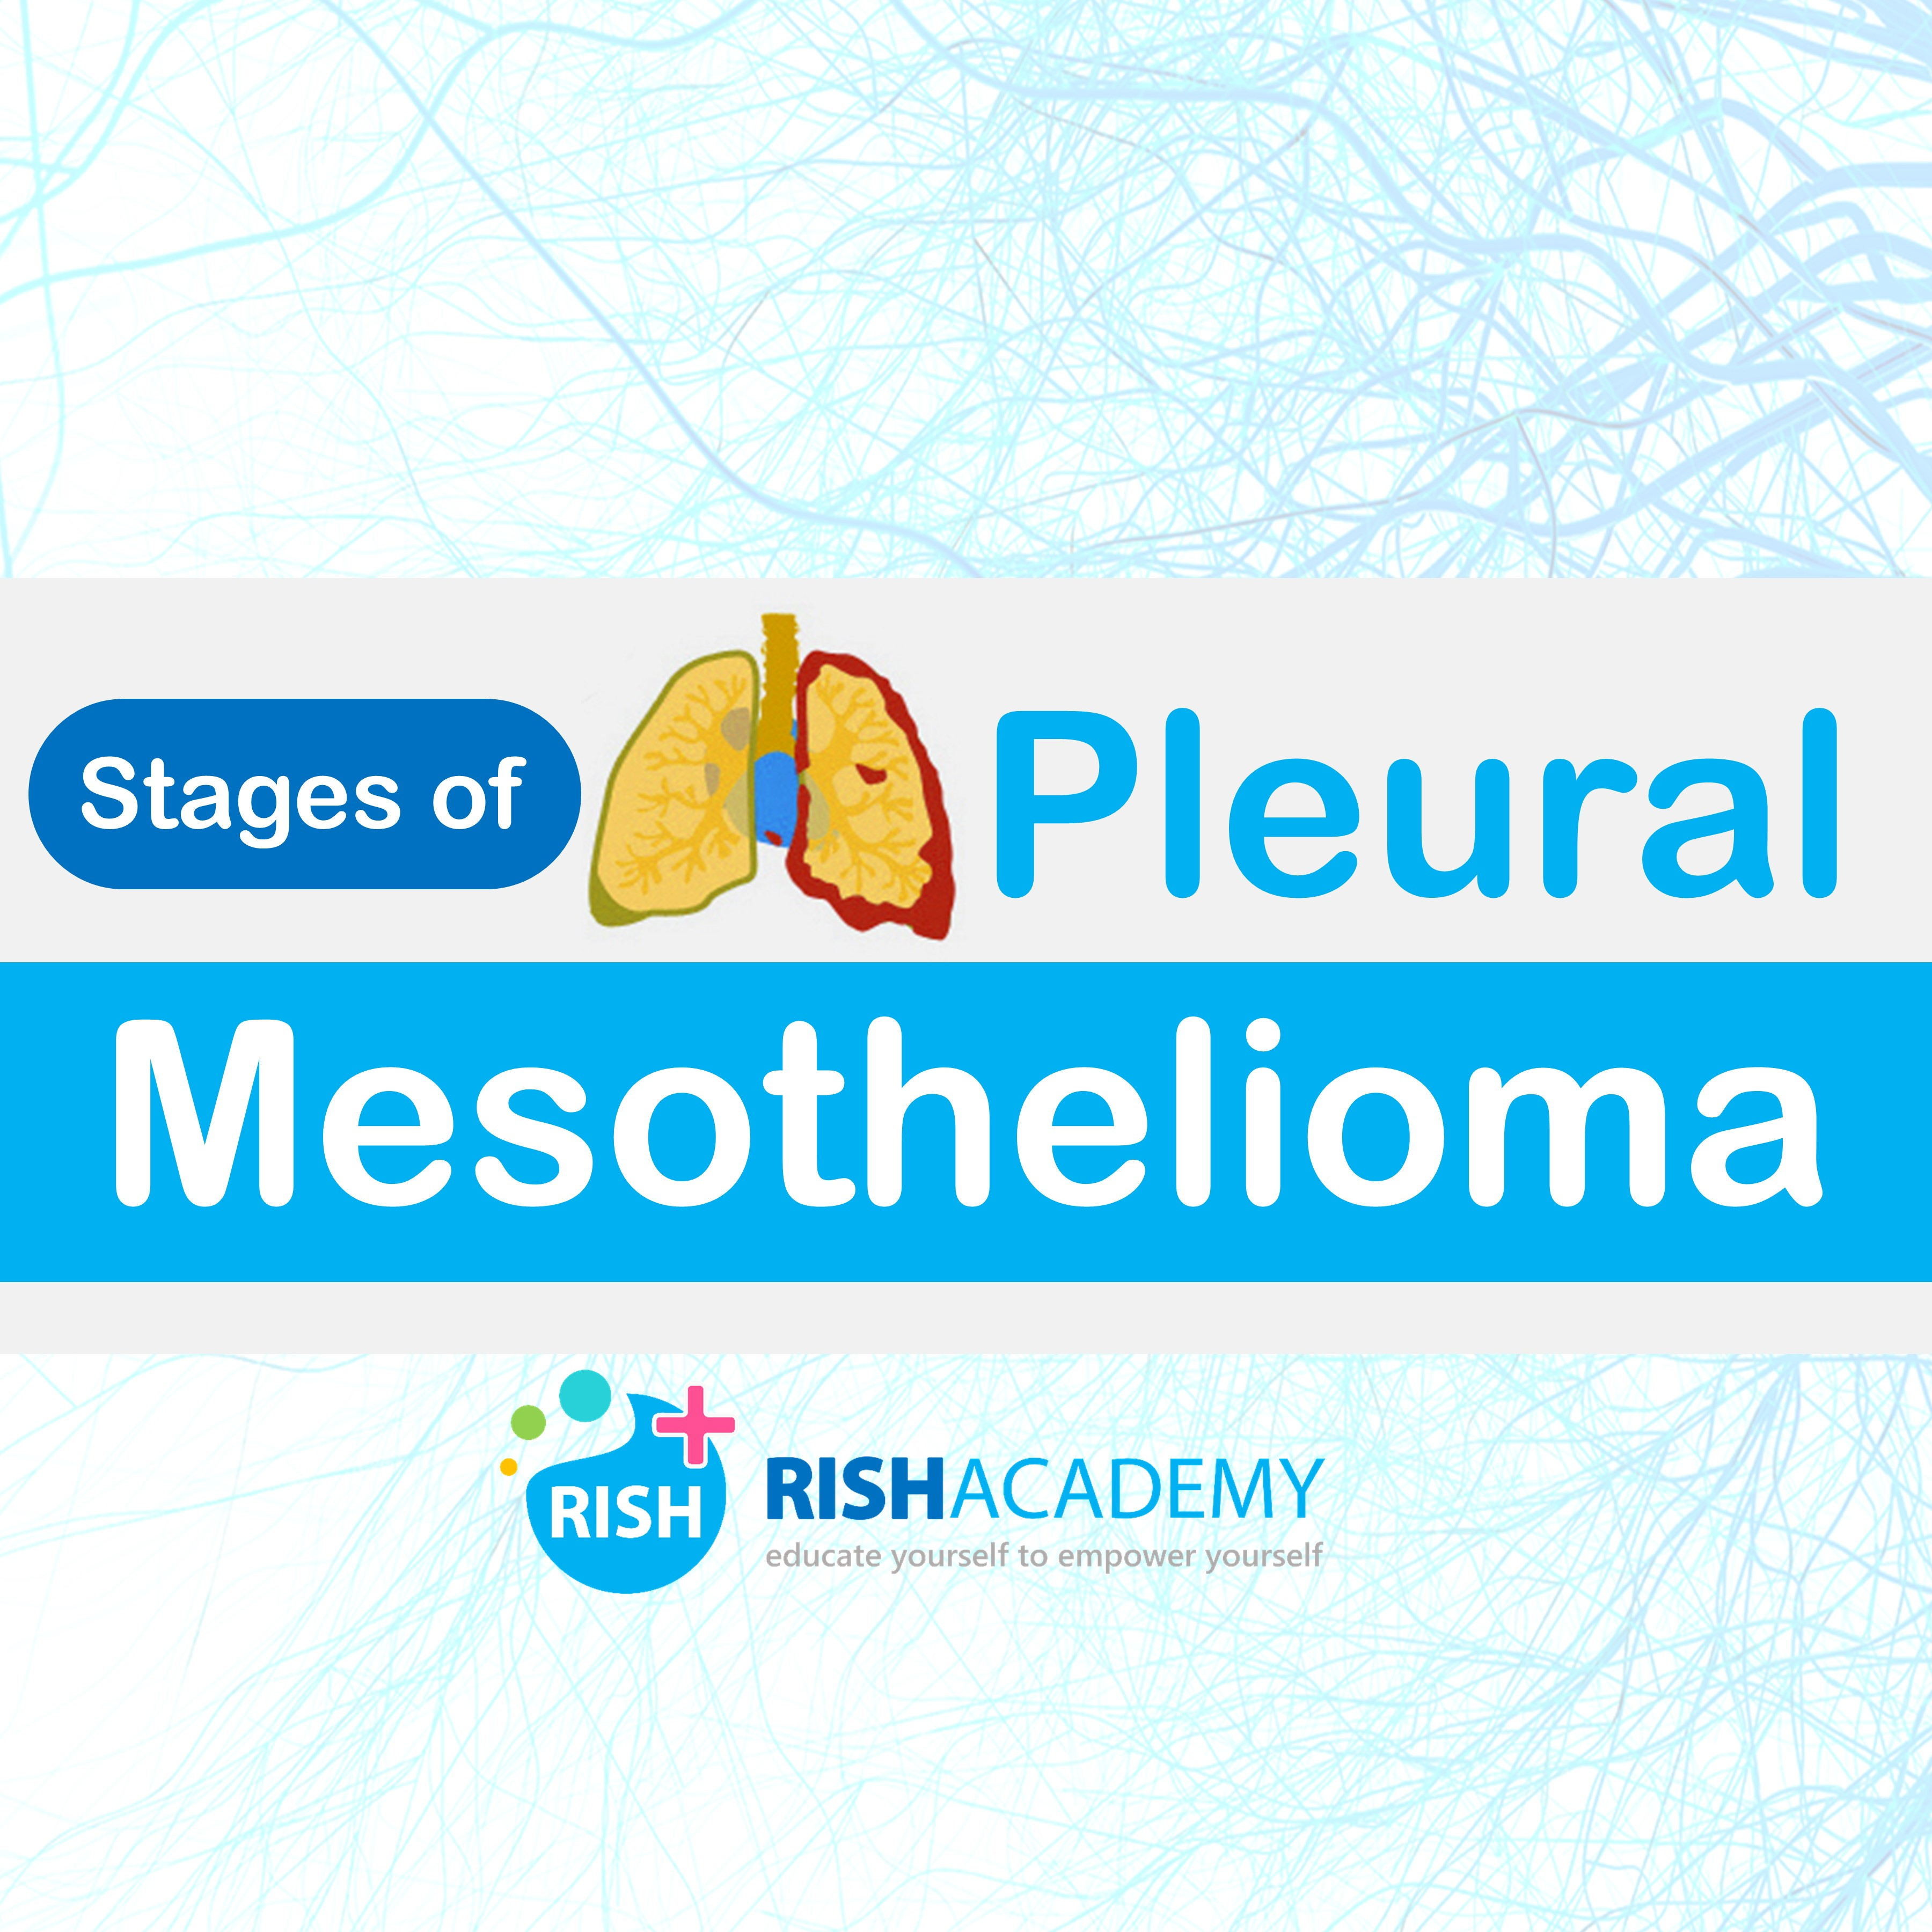 pleural mesothelioma stages